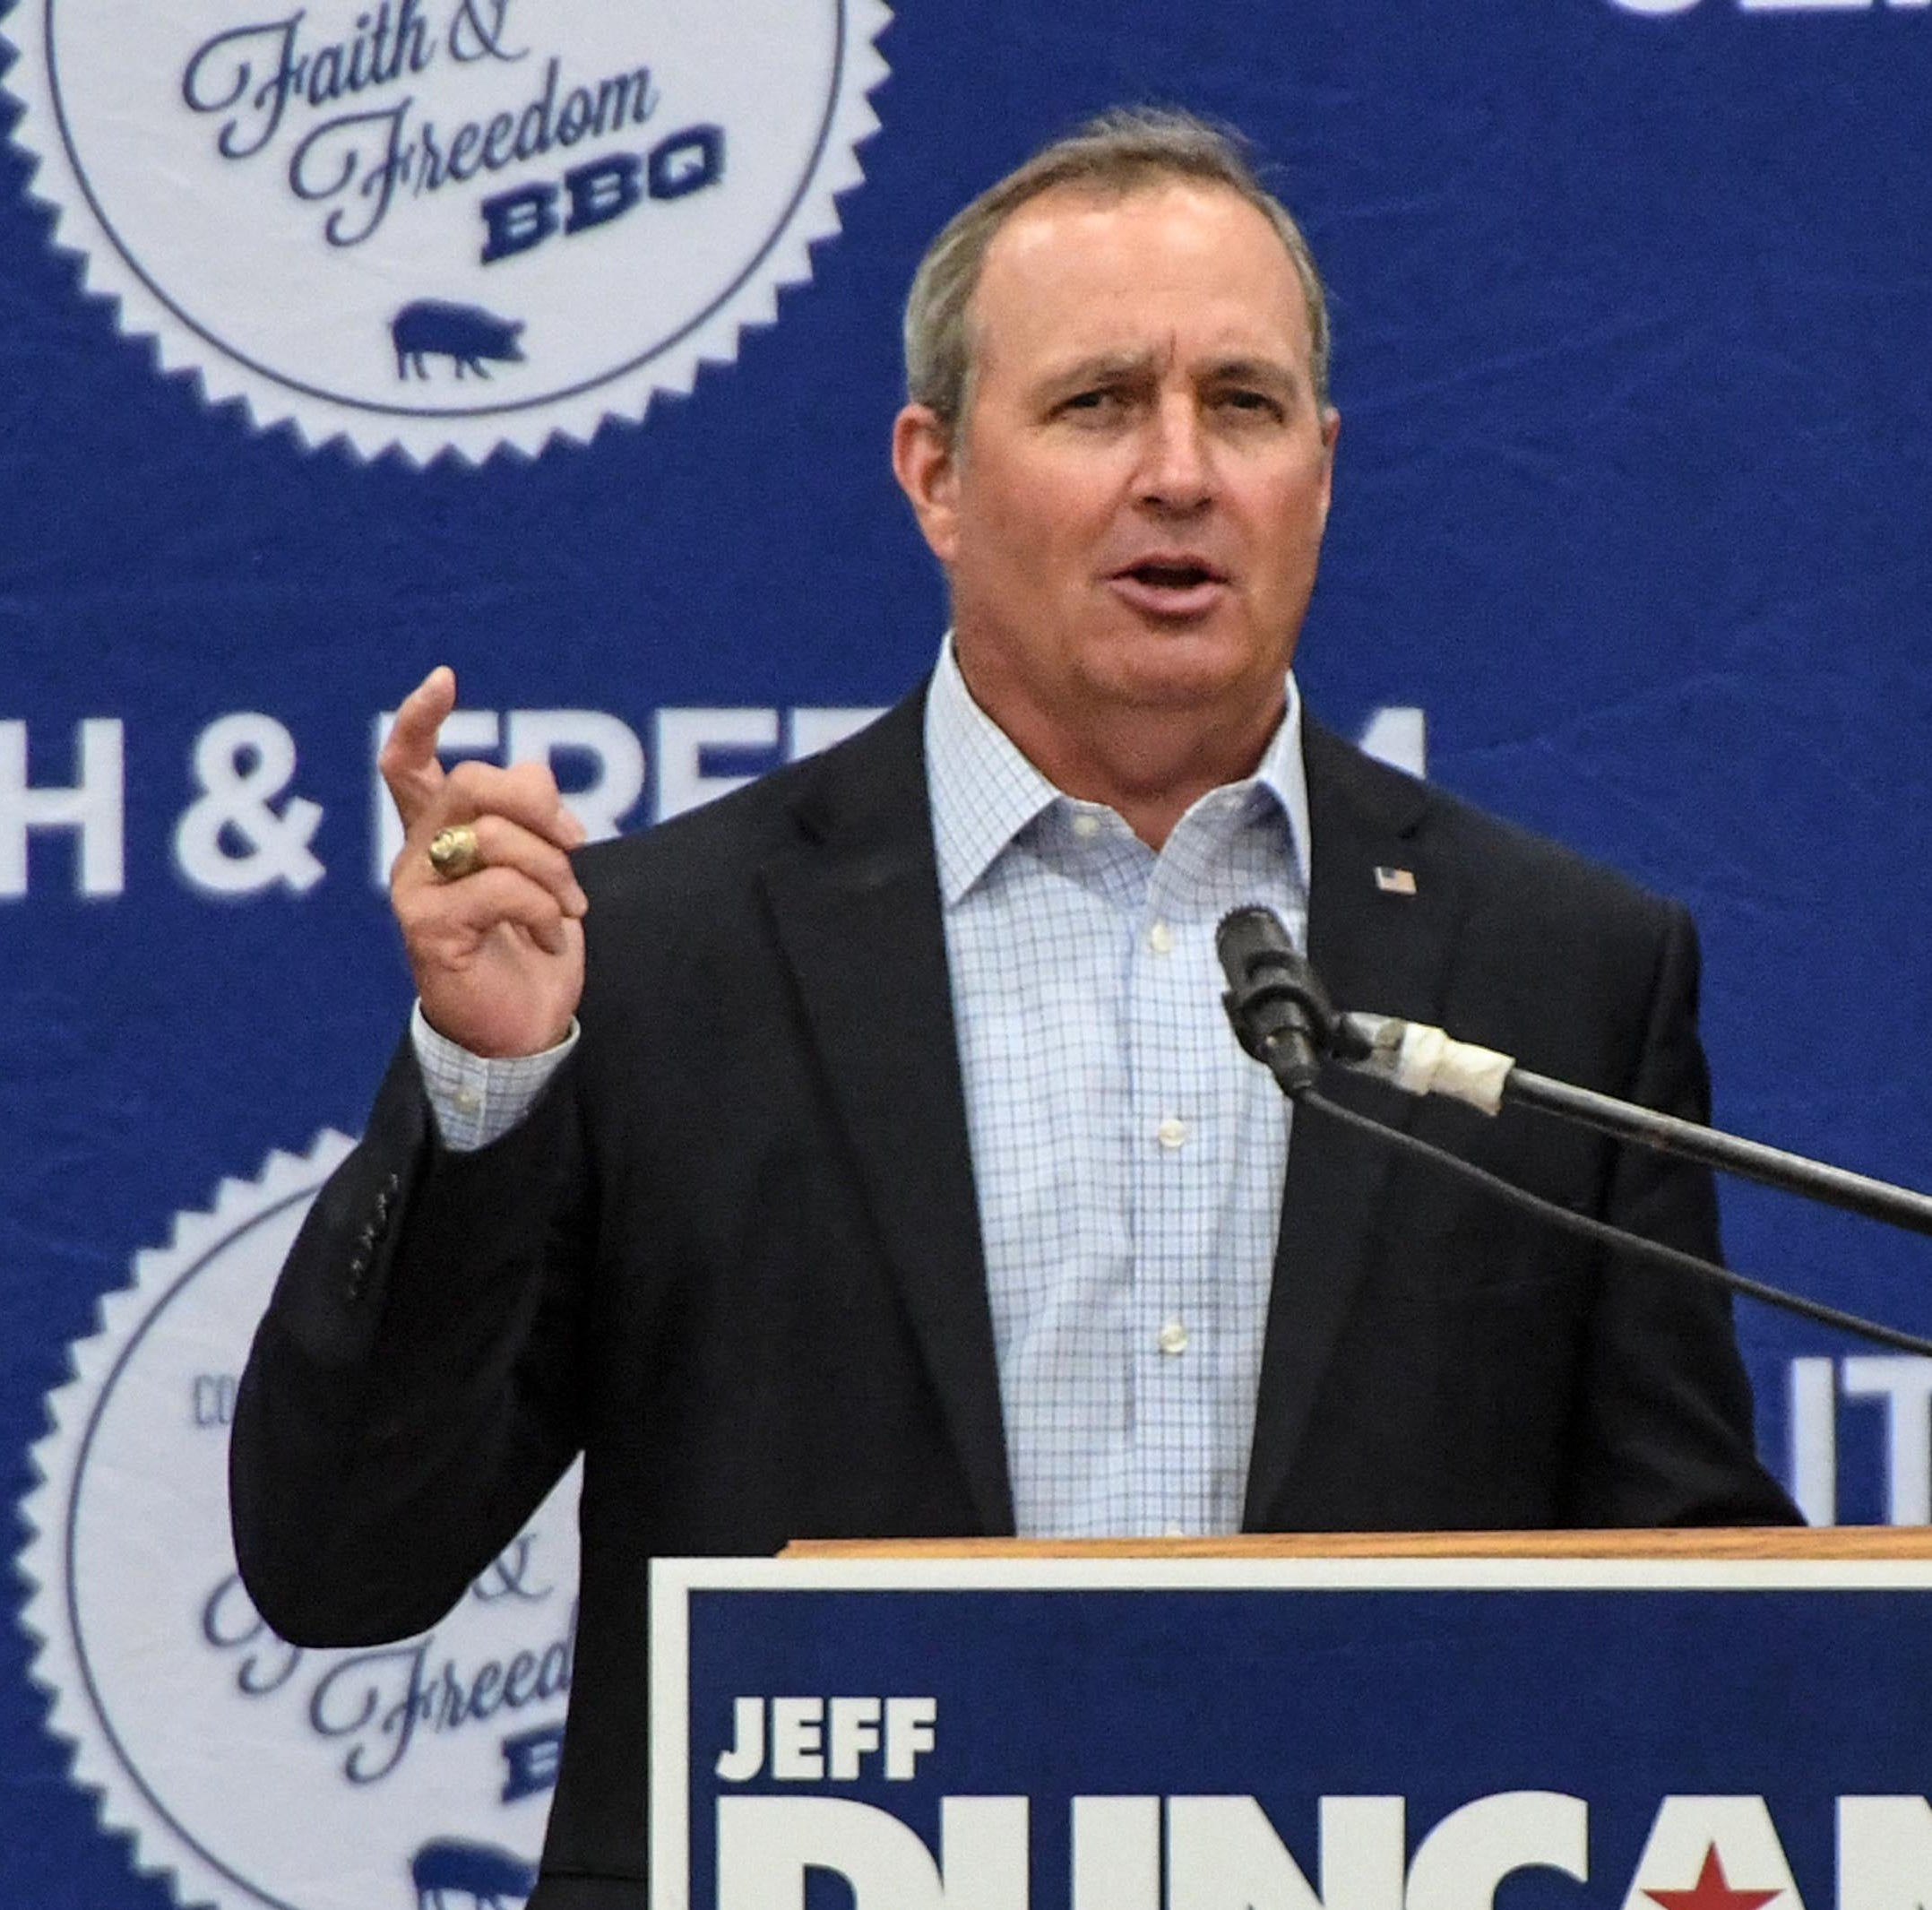 Rep. Jeff Duncan: Democrats want to halt hard-earned gains